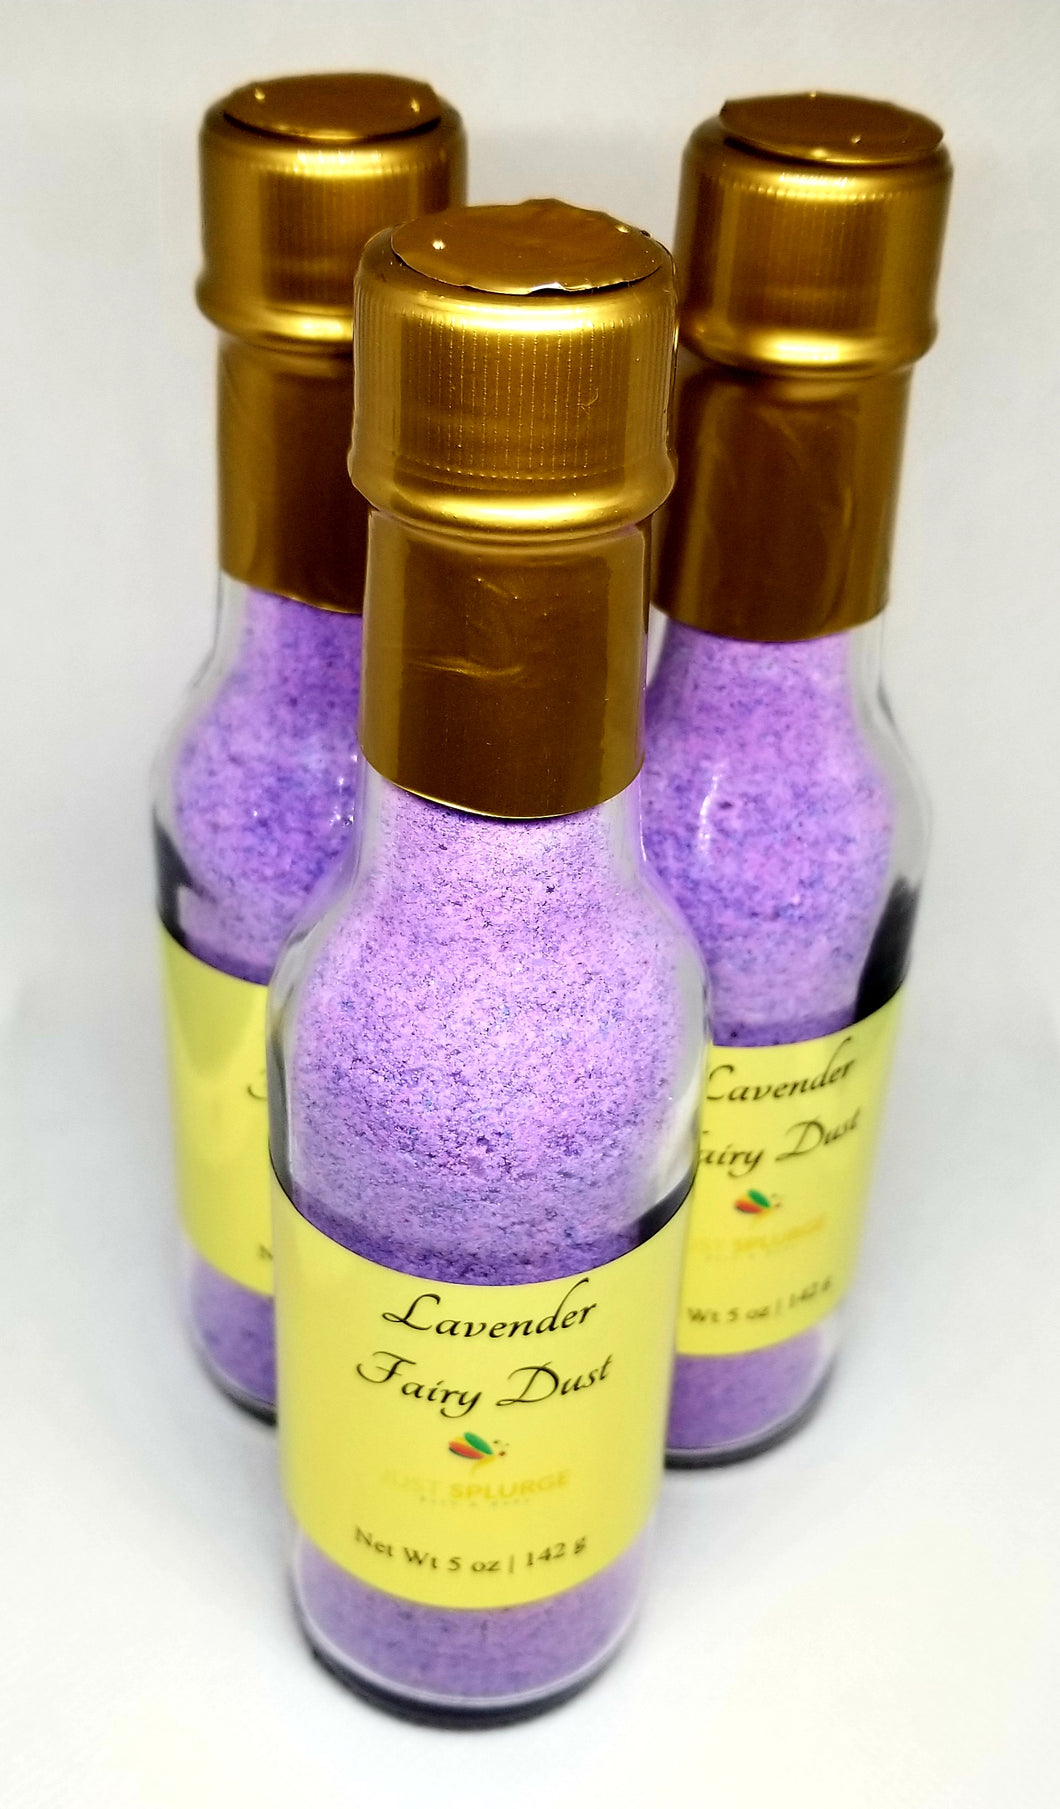 Lavender Fairy Dust